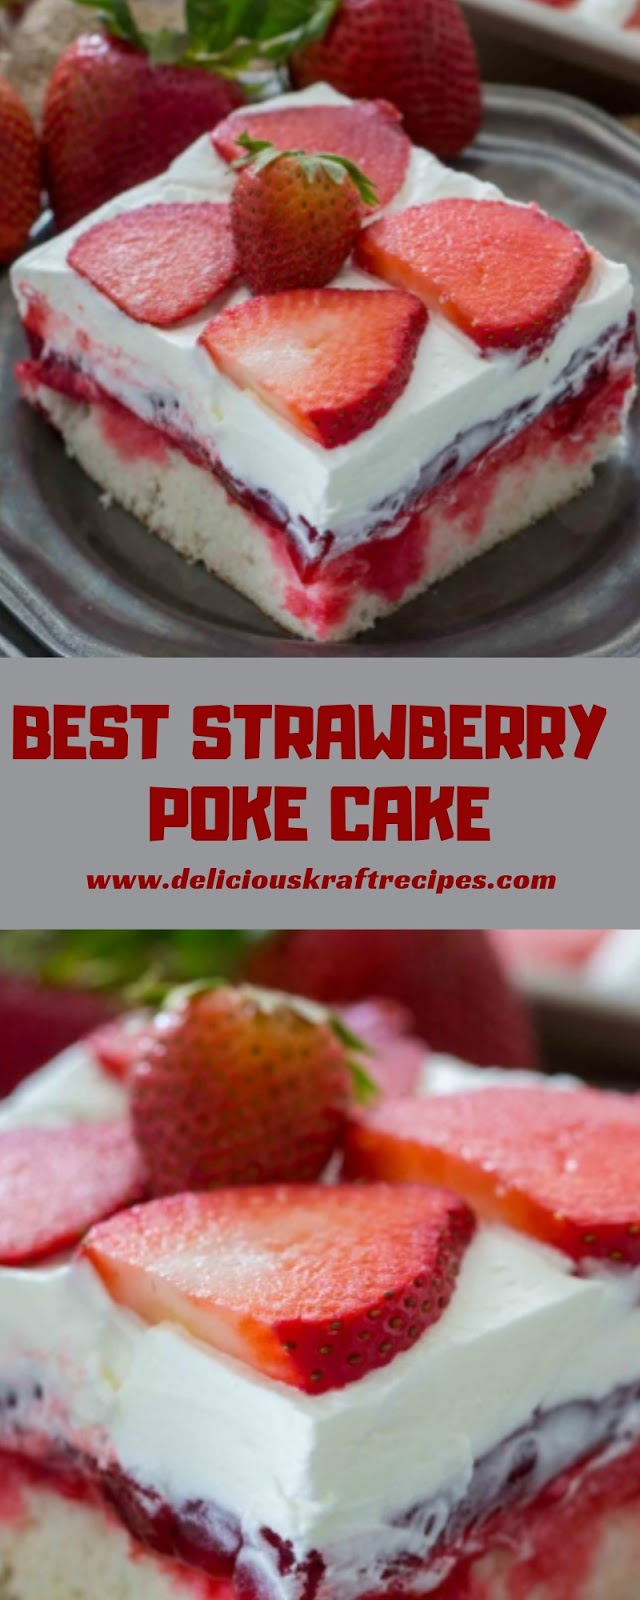 BEST STRAWBERRY POKE CAKE